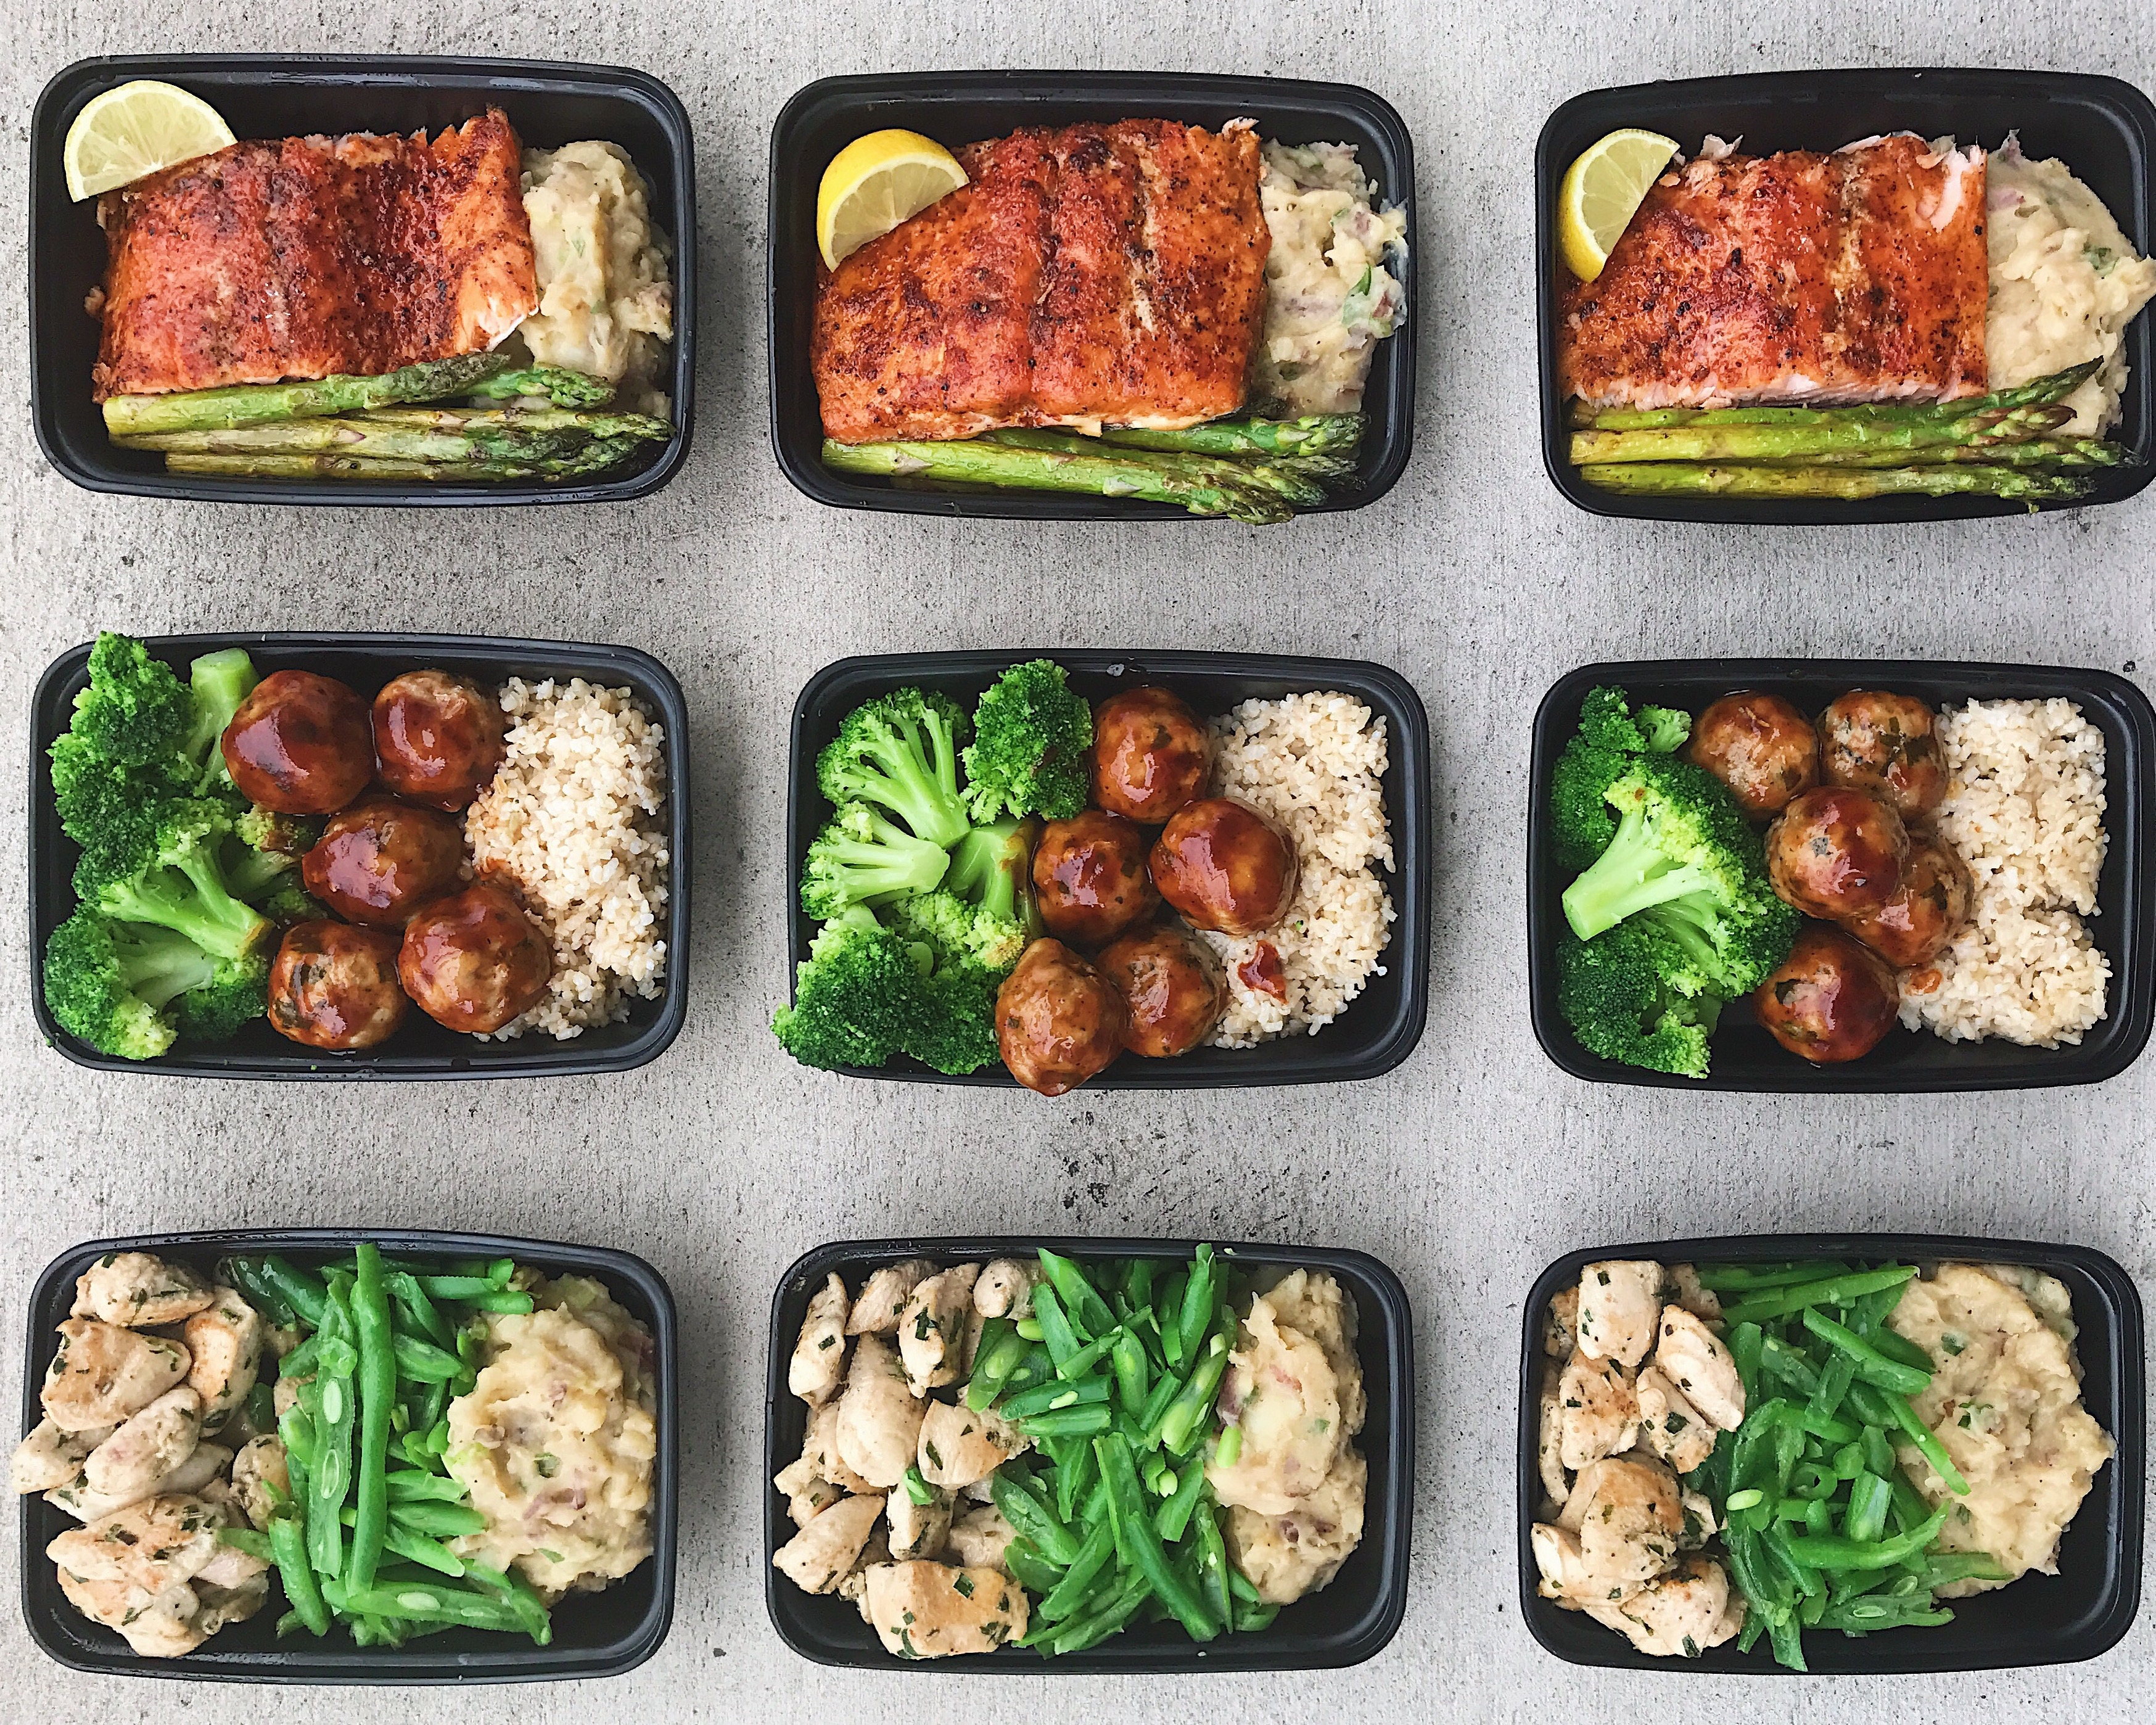 vice.com - Michelle Malia - Meal Prepping Could Actually Change Your Life